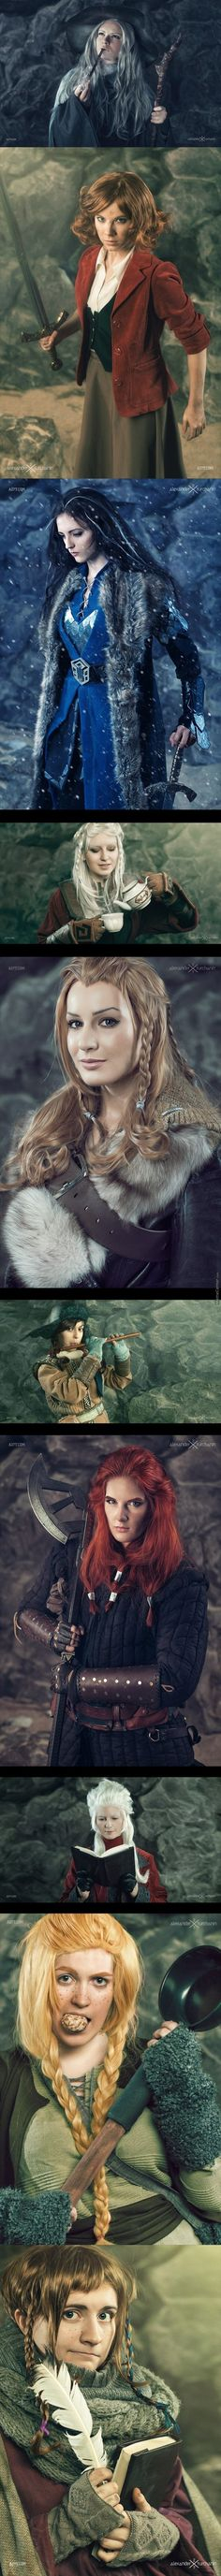 Genderbent Hobbit Cosplays - femme!Thorin looks awesome!